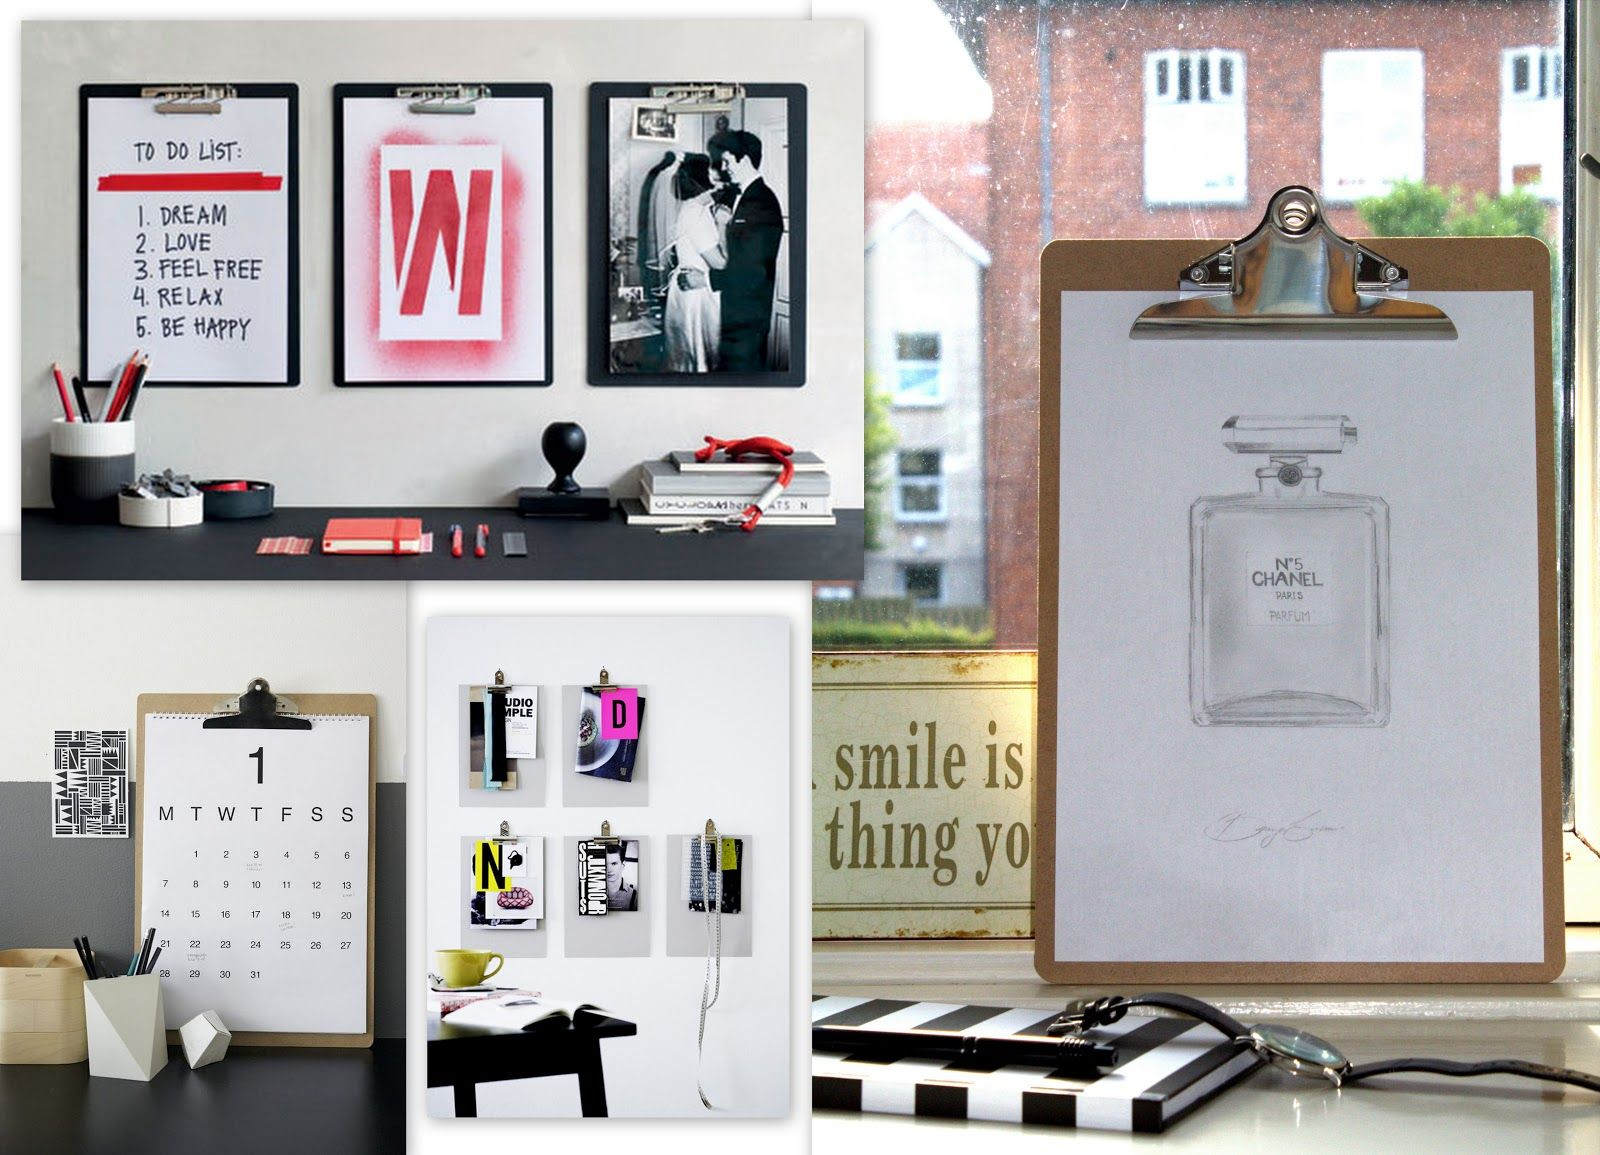 benya suwan clipboard from s strene grene my kikki k style pinterest design och inspiration. Black Bedroom Furniture Sets. Home Design Ideas